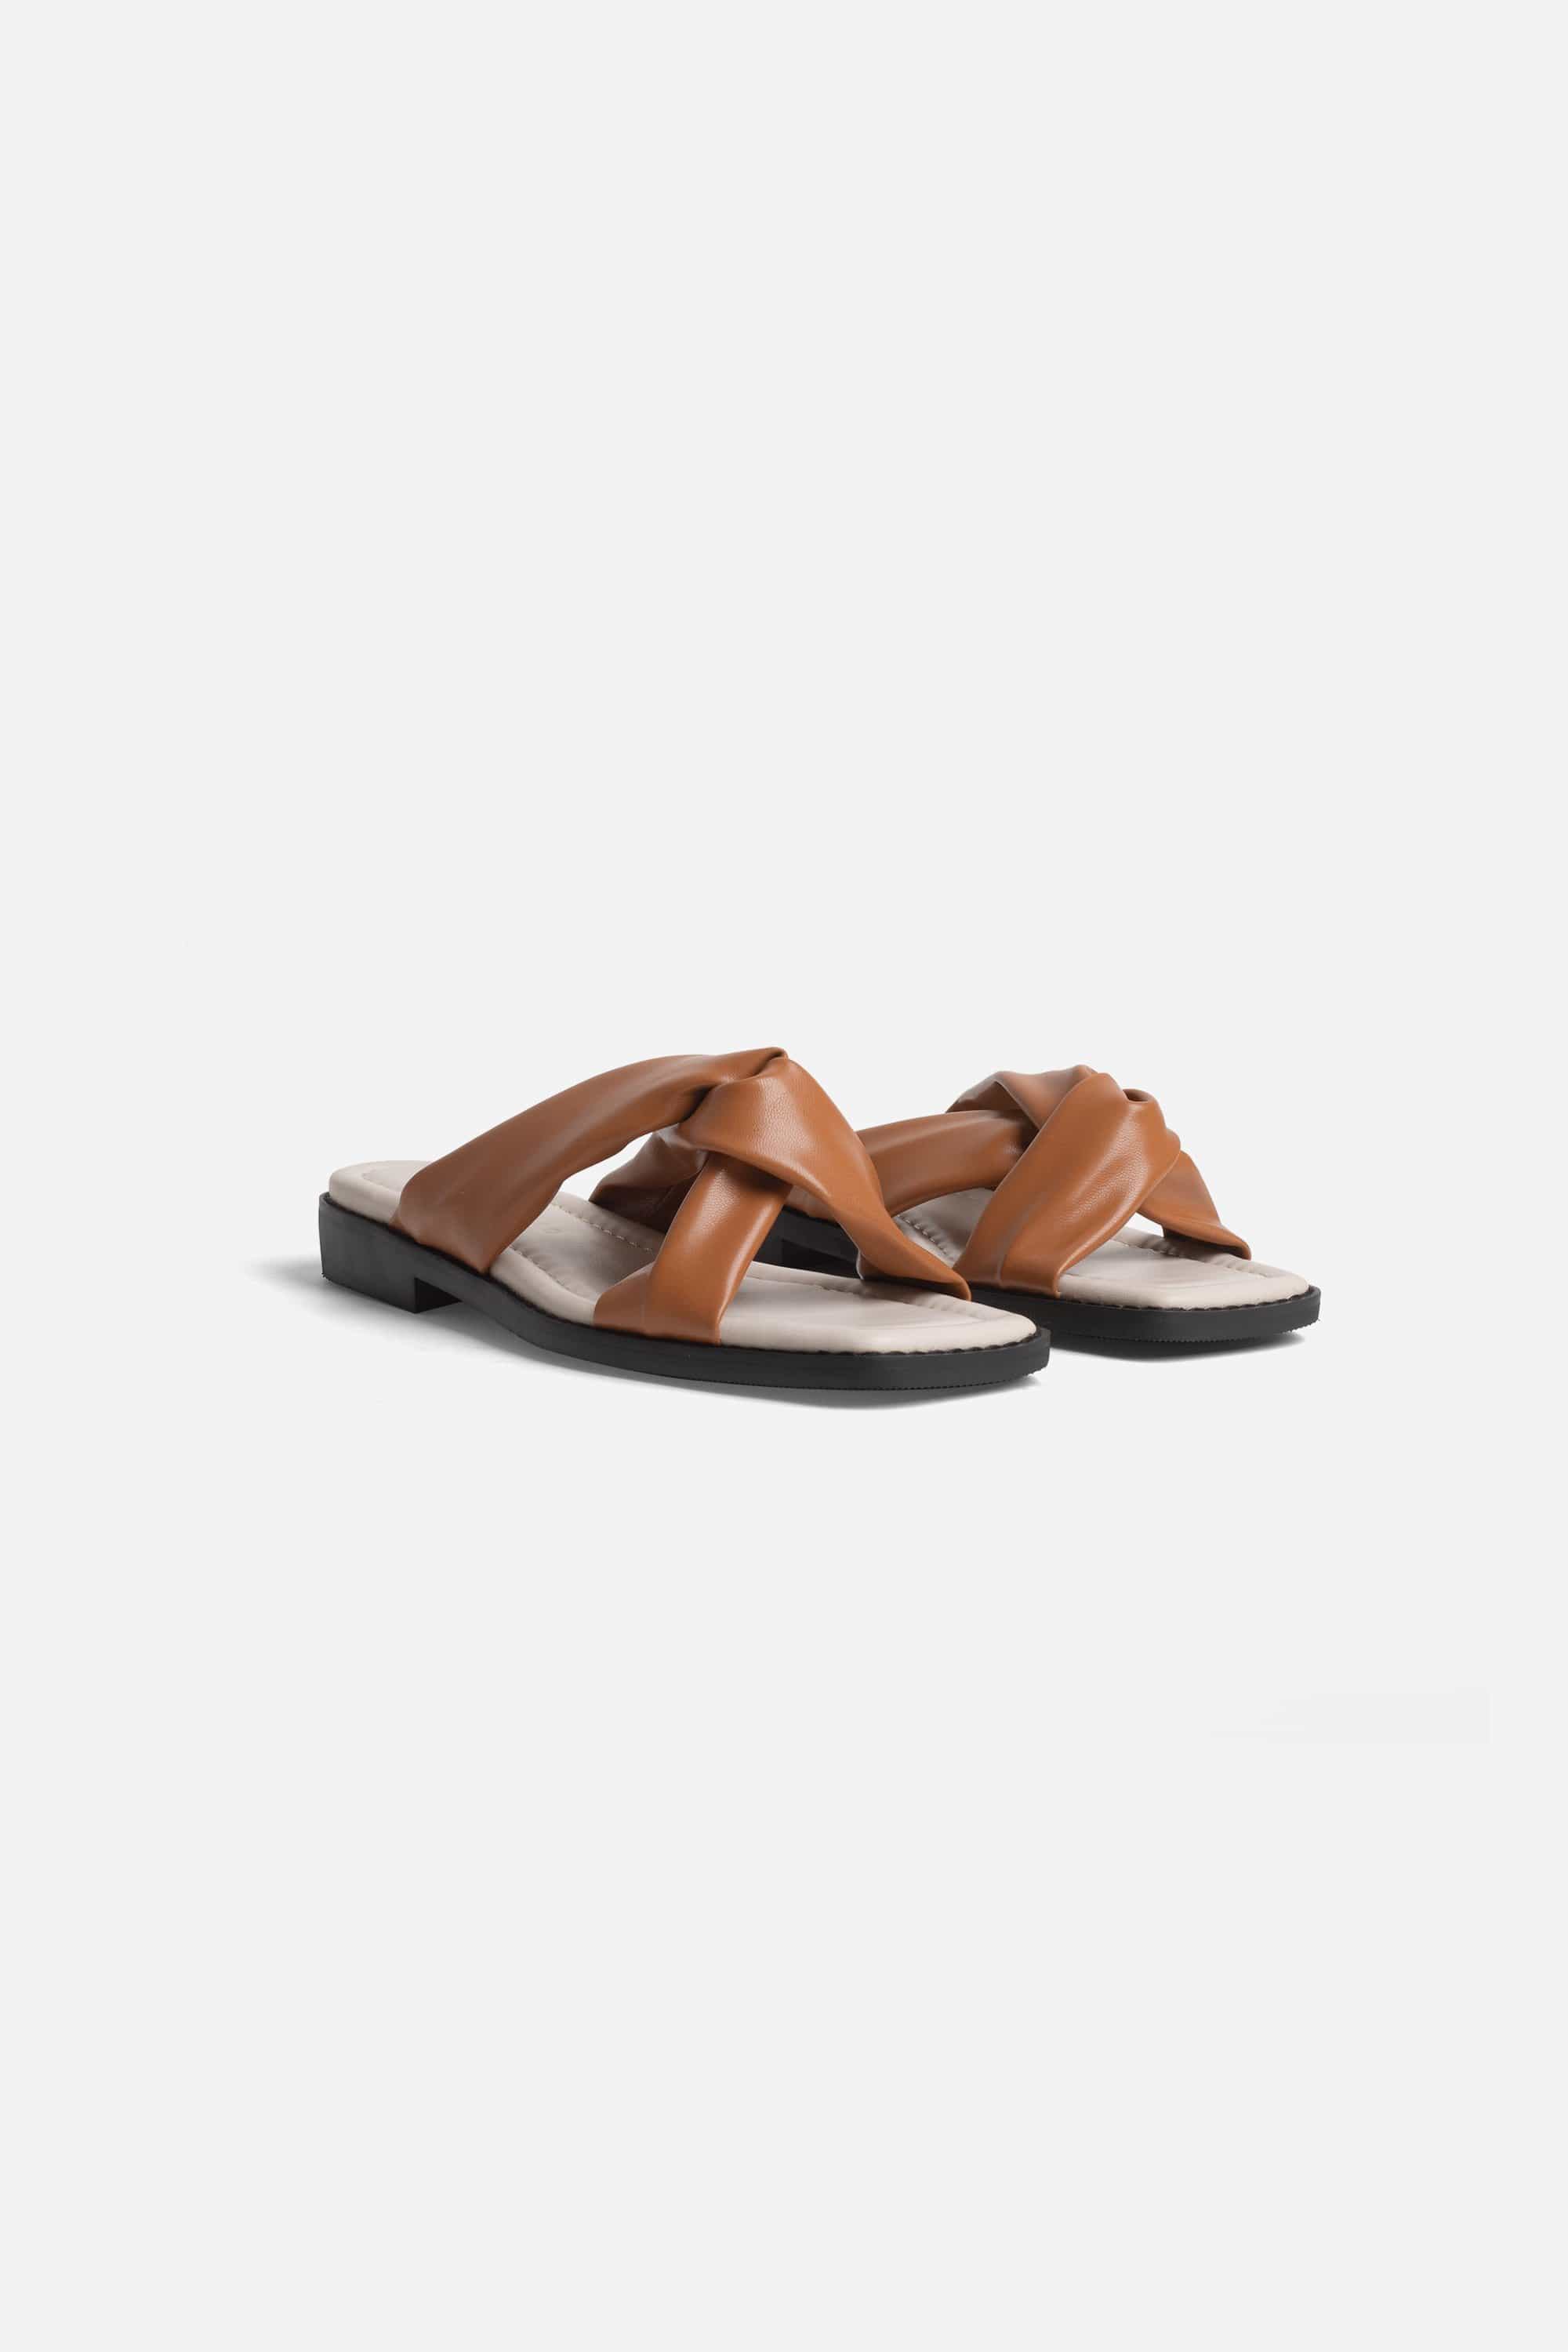 Collection & Co Filia Up-Cycled Vegan Leather Slip-On Sandal | Tan